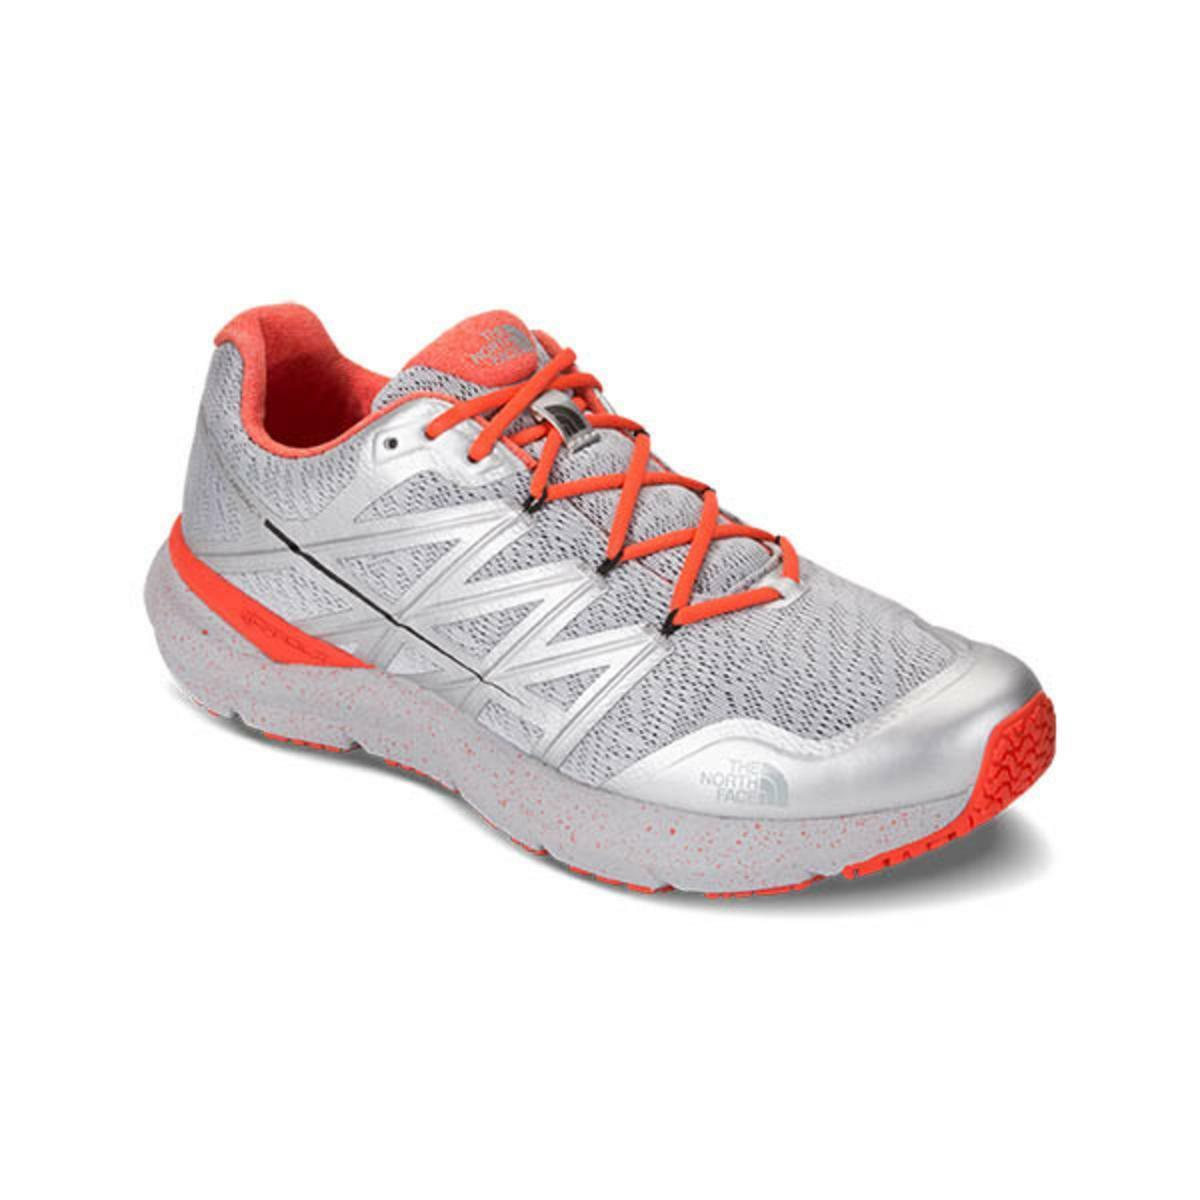 The North Face Ultra Cardiac Herren Schuhe Größe 9.5 Brandneu Silber Orange